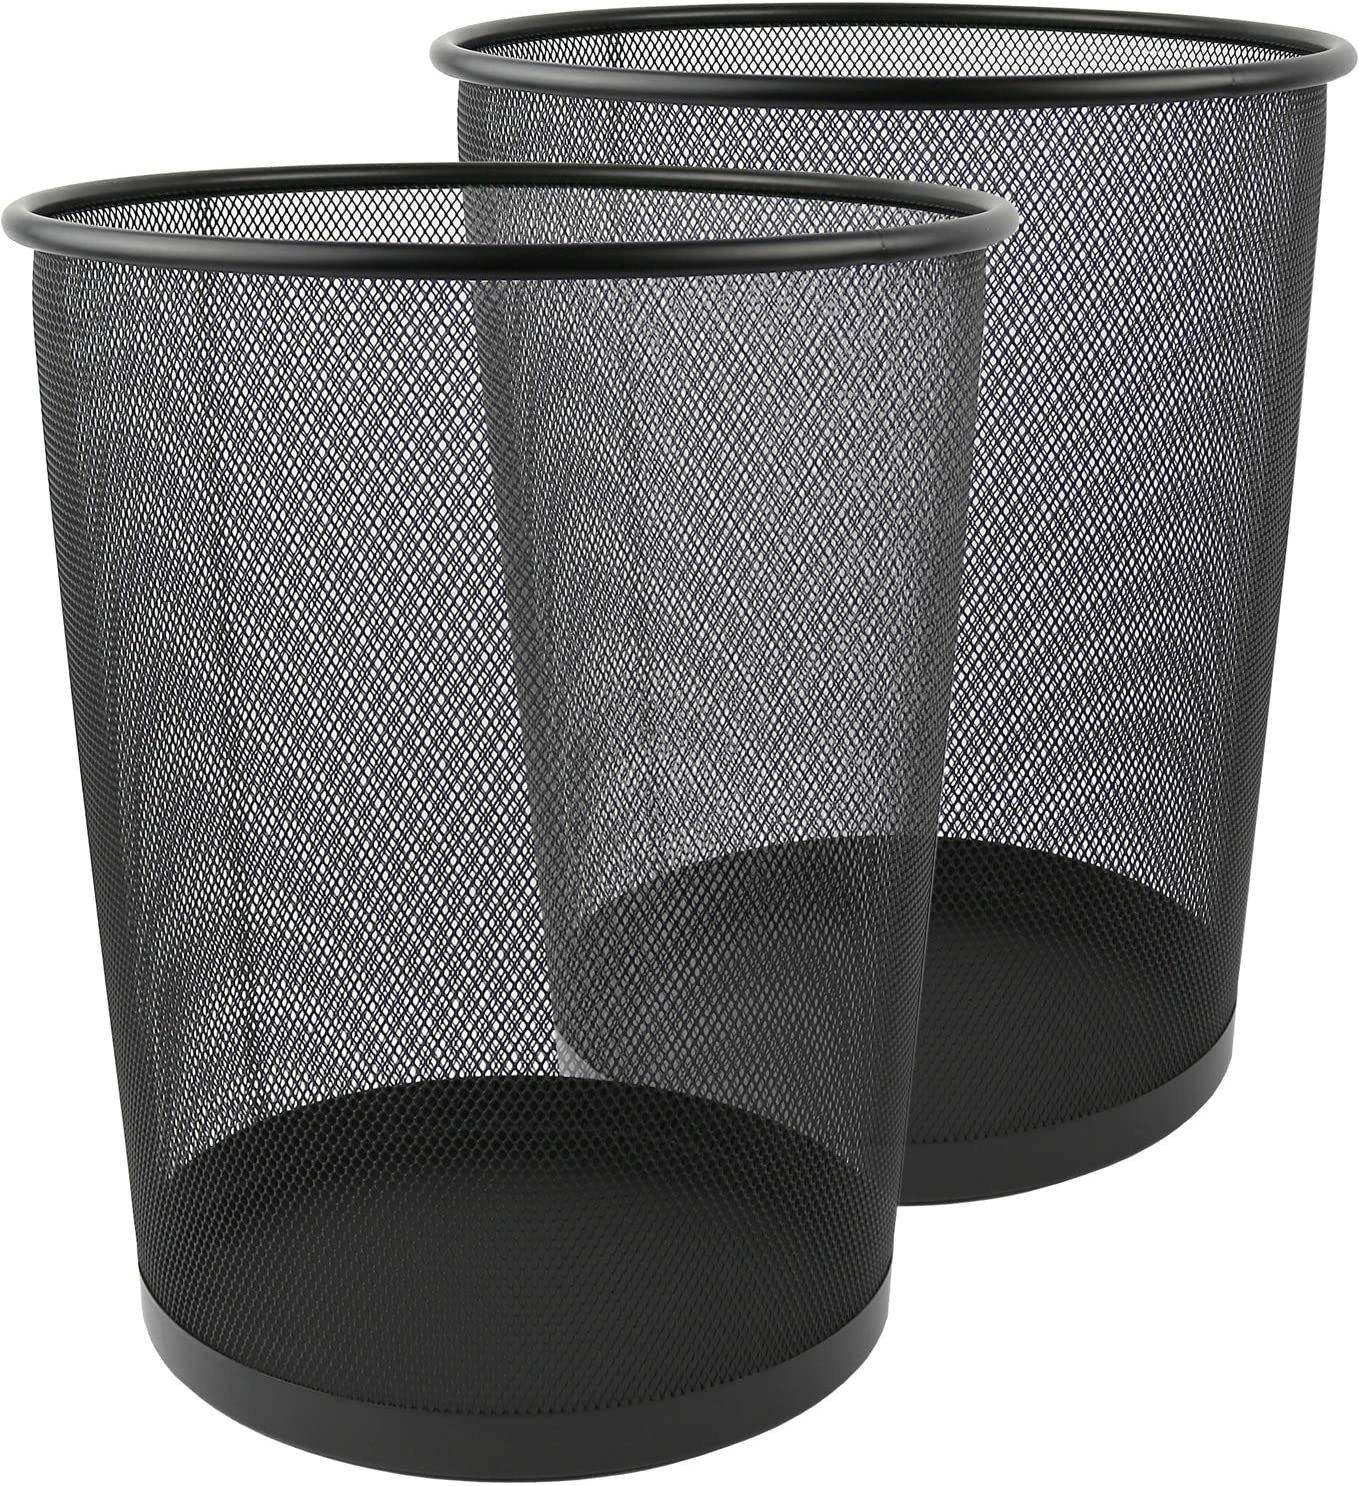 Two black 6 gallon Greenco GRC2708 Round Mesh Wastebasket Trash Cans